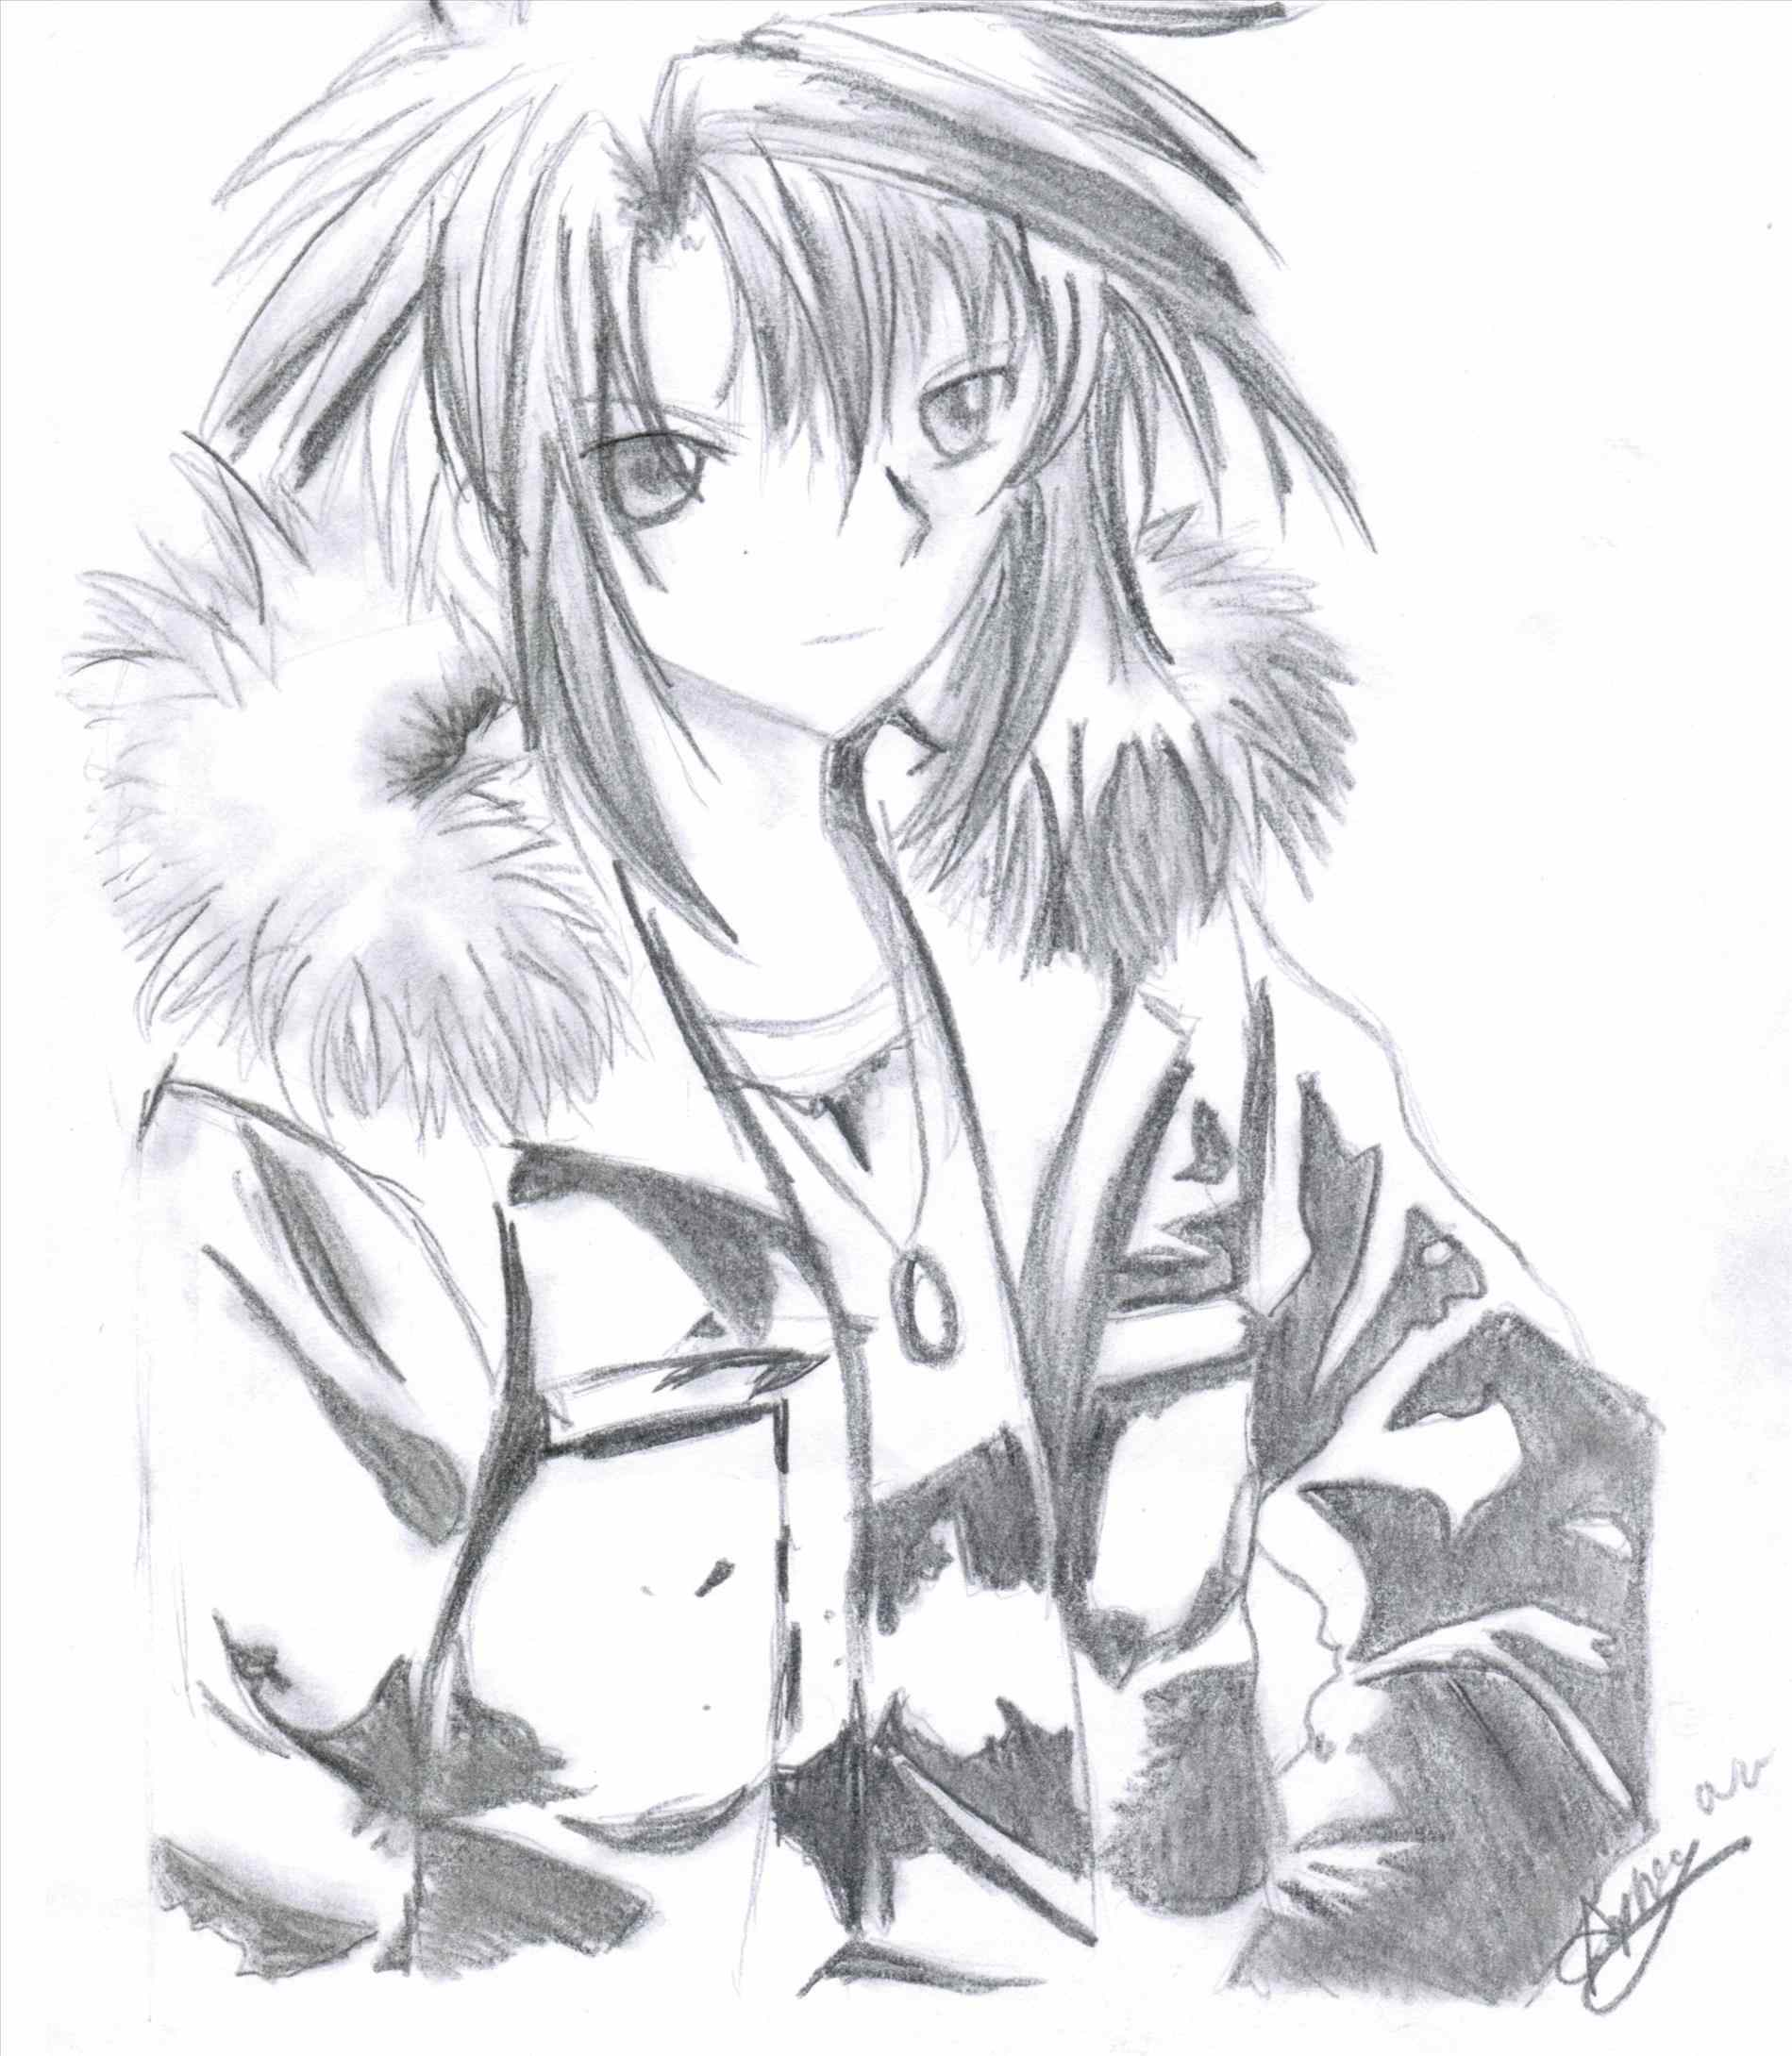 1899x2179 Pencil Girl Sketch Cute Cute Anime Boy Art Pencil And Girl Sketch